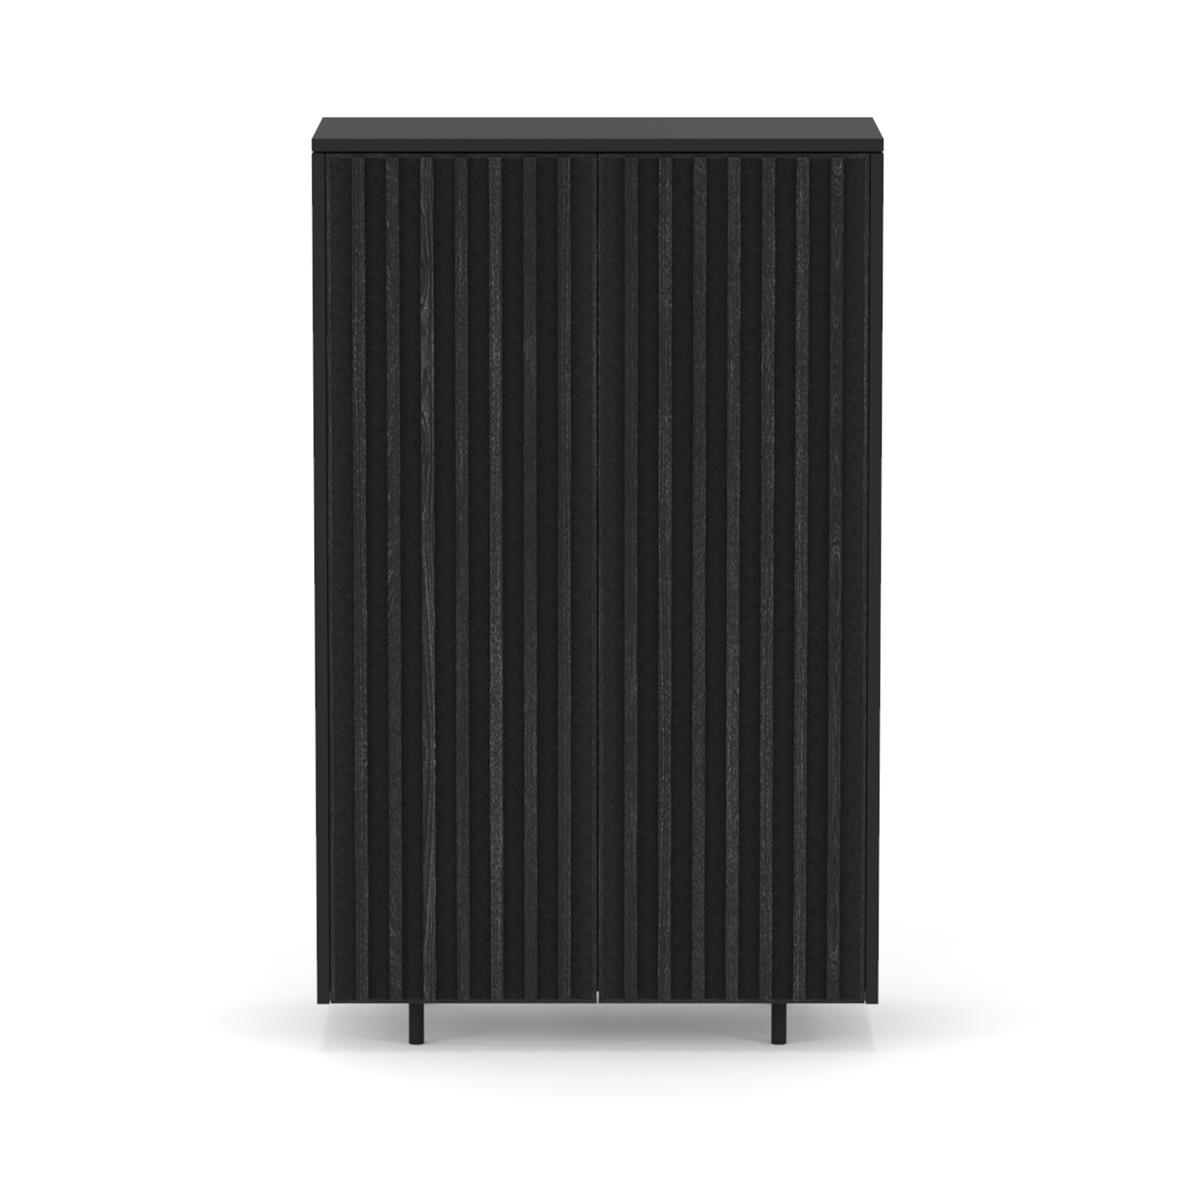 dB Silent Cabinet Tall - Anthracite & Anthracite